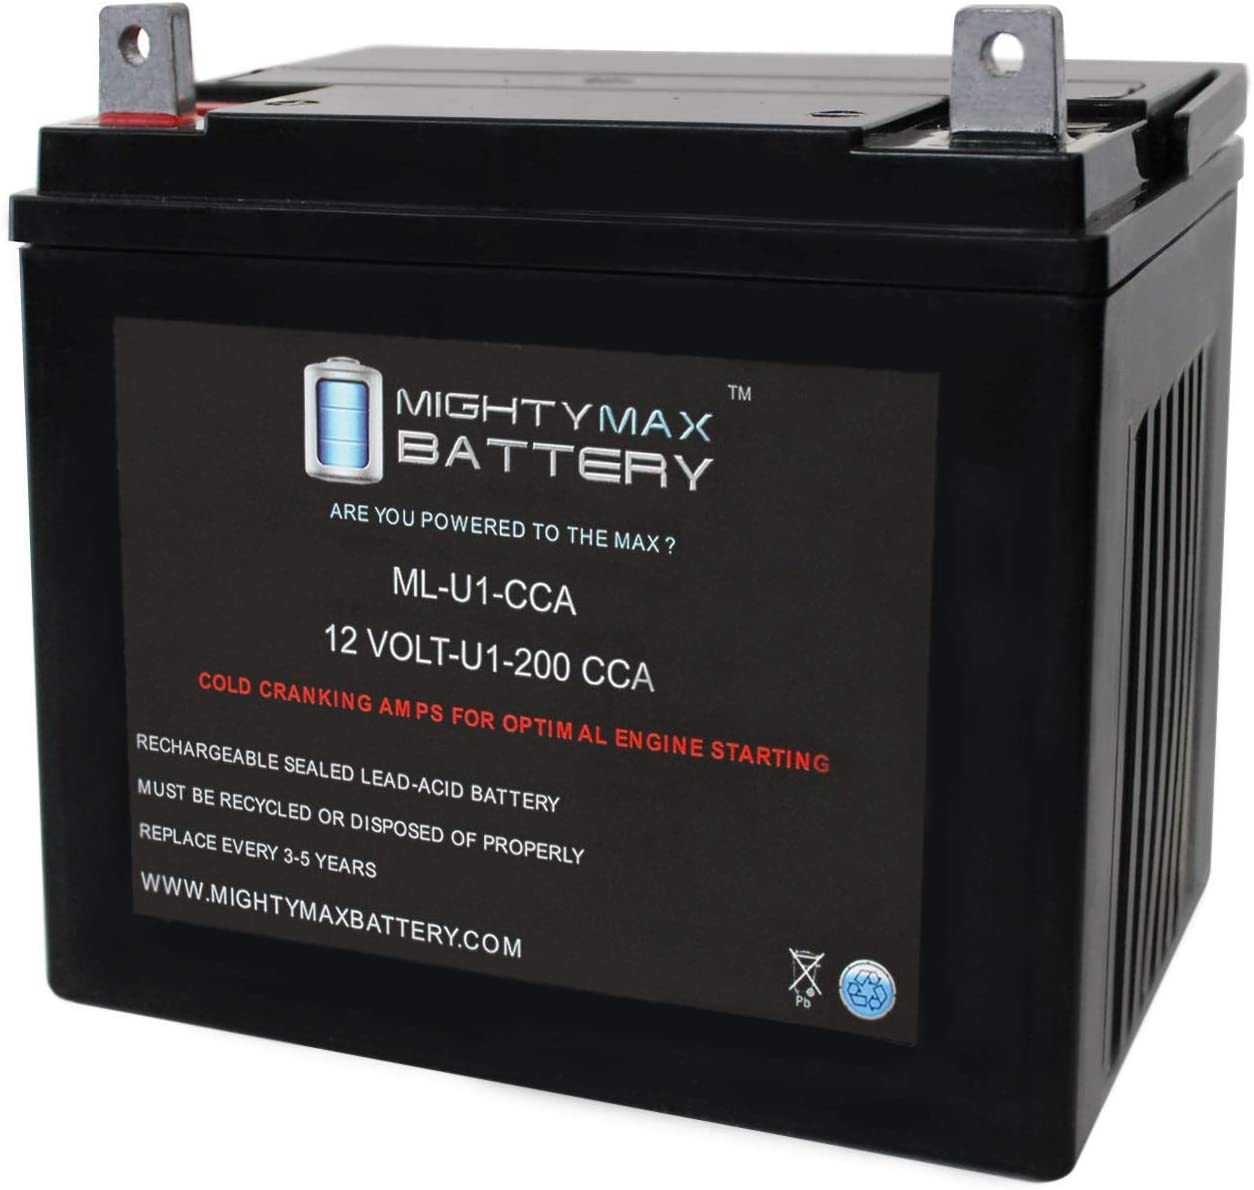 Mighty Max Battery ML-U1 12V 200CCA Battery for John Deere Lawn and Garden Ride on Mower Brand Product